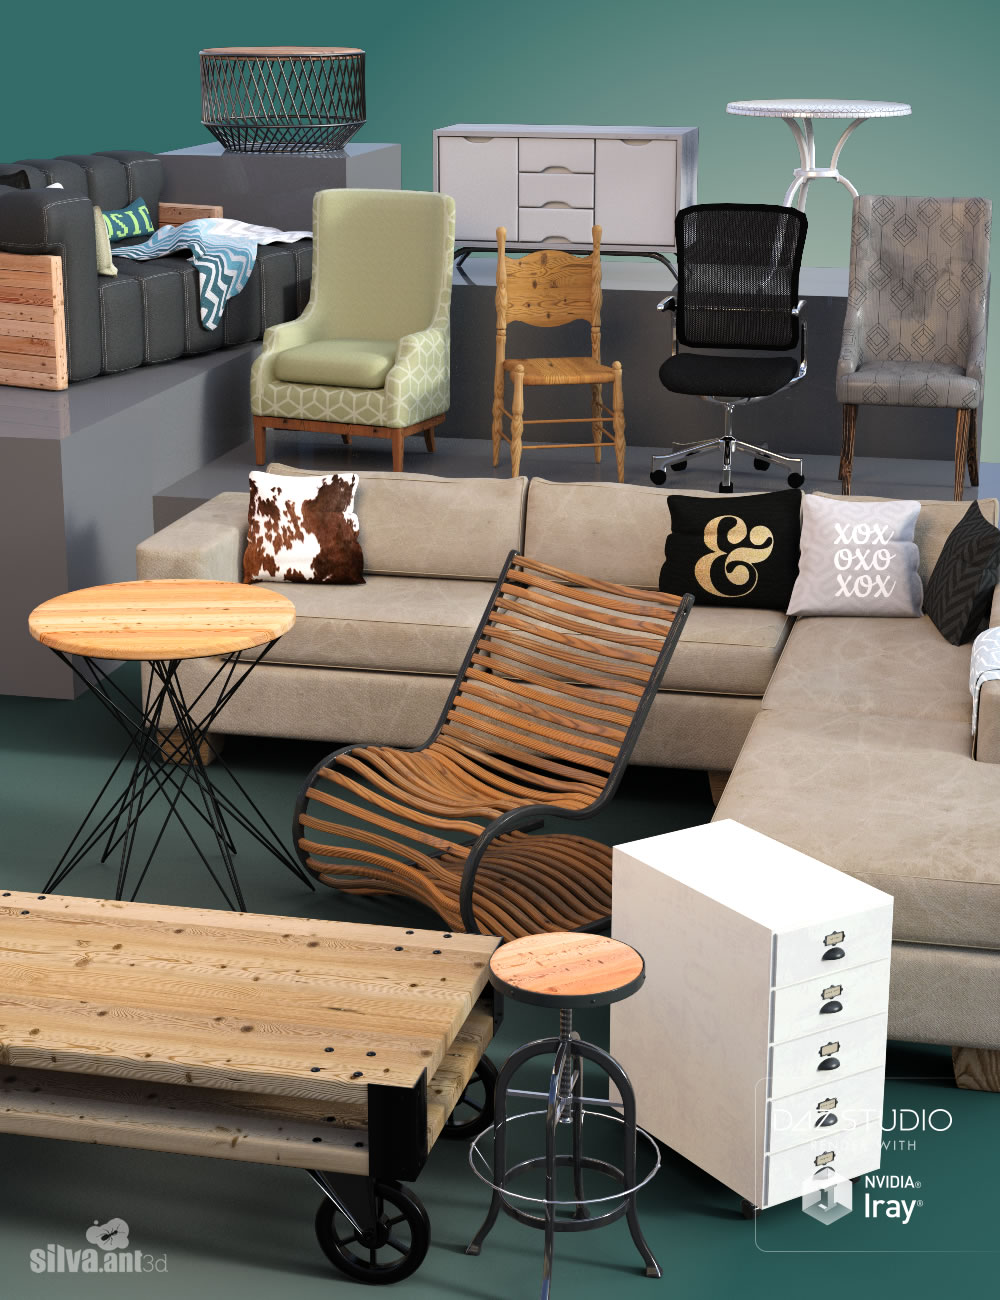 Collection of Furniture by: SilvaAnt3d, 3D Models by Daz 3D